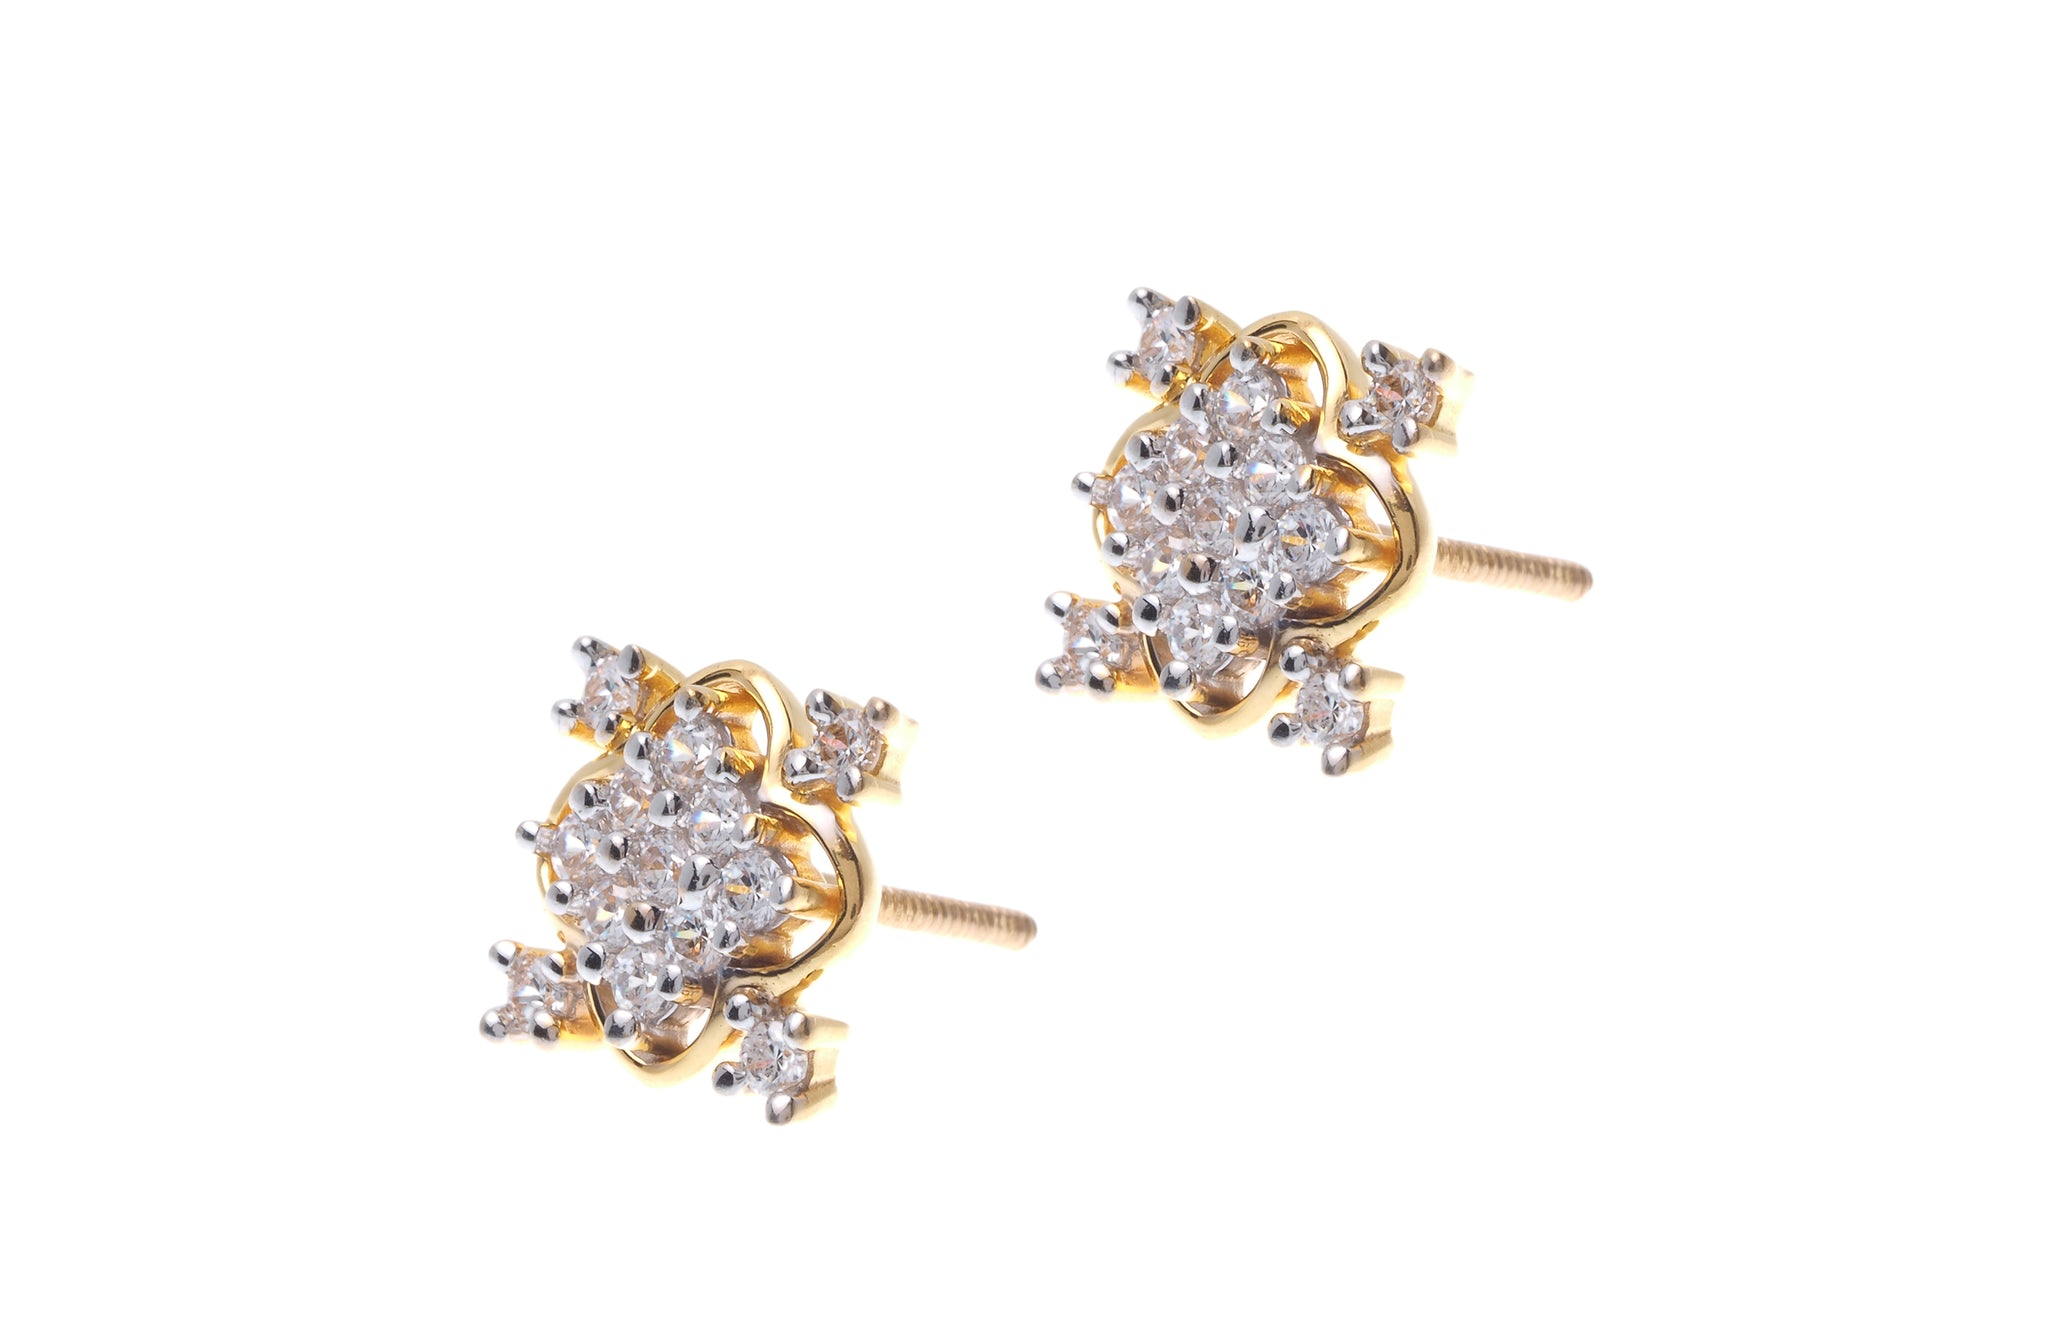 floral products girls studs beloved daily cut fashion round faux cubic flower silver earrings emelle stone cz zirconia diamond stud